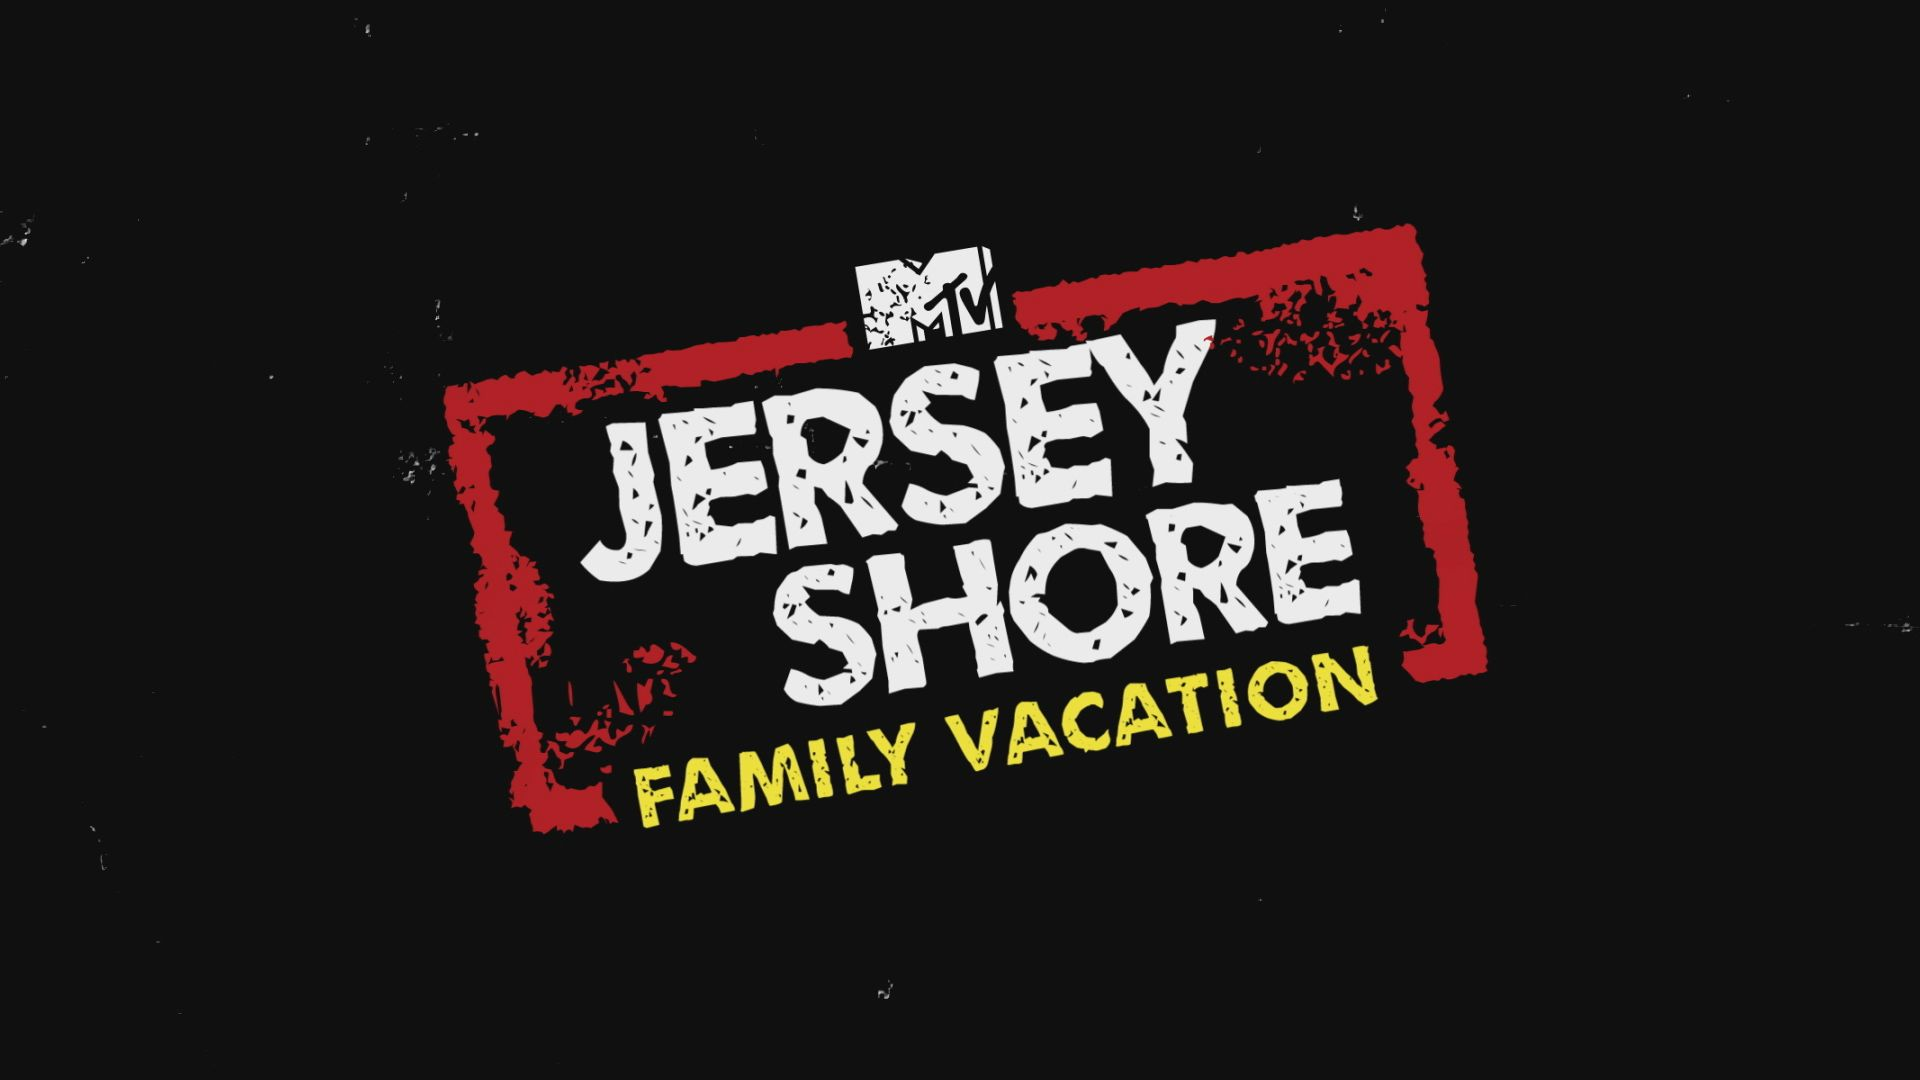 Jersey Shore Returns for Family Vacation